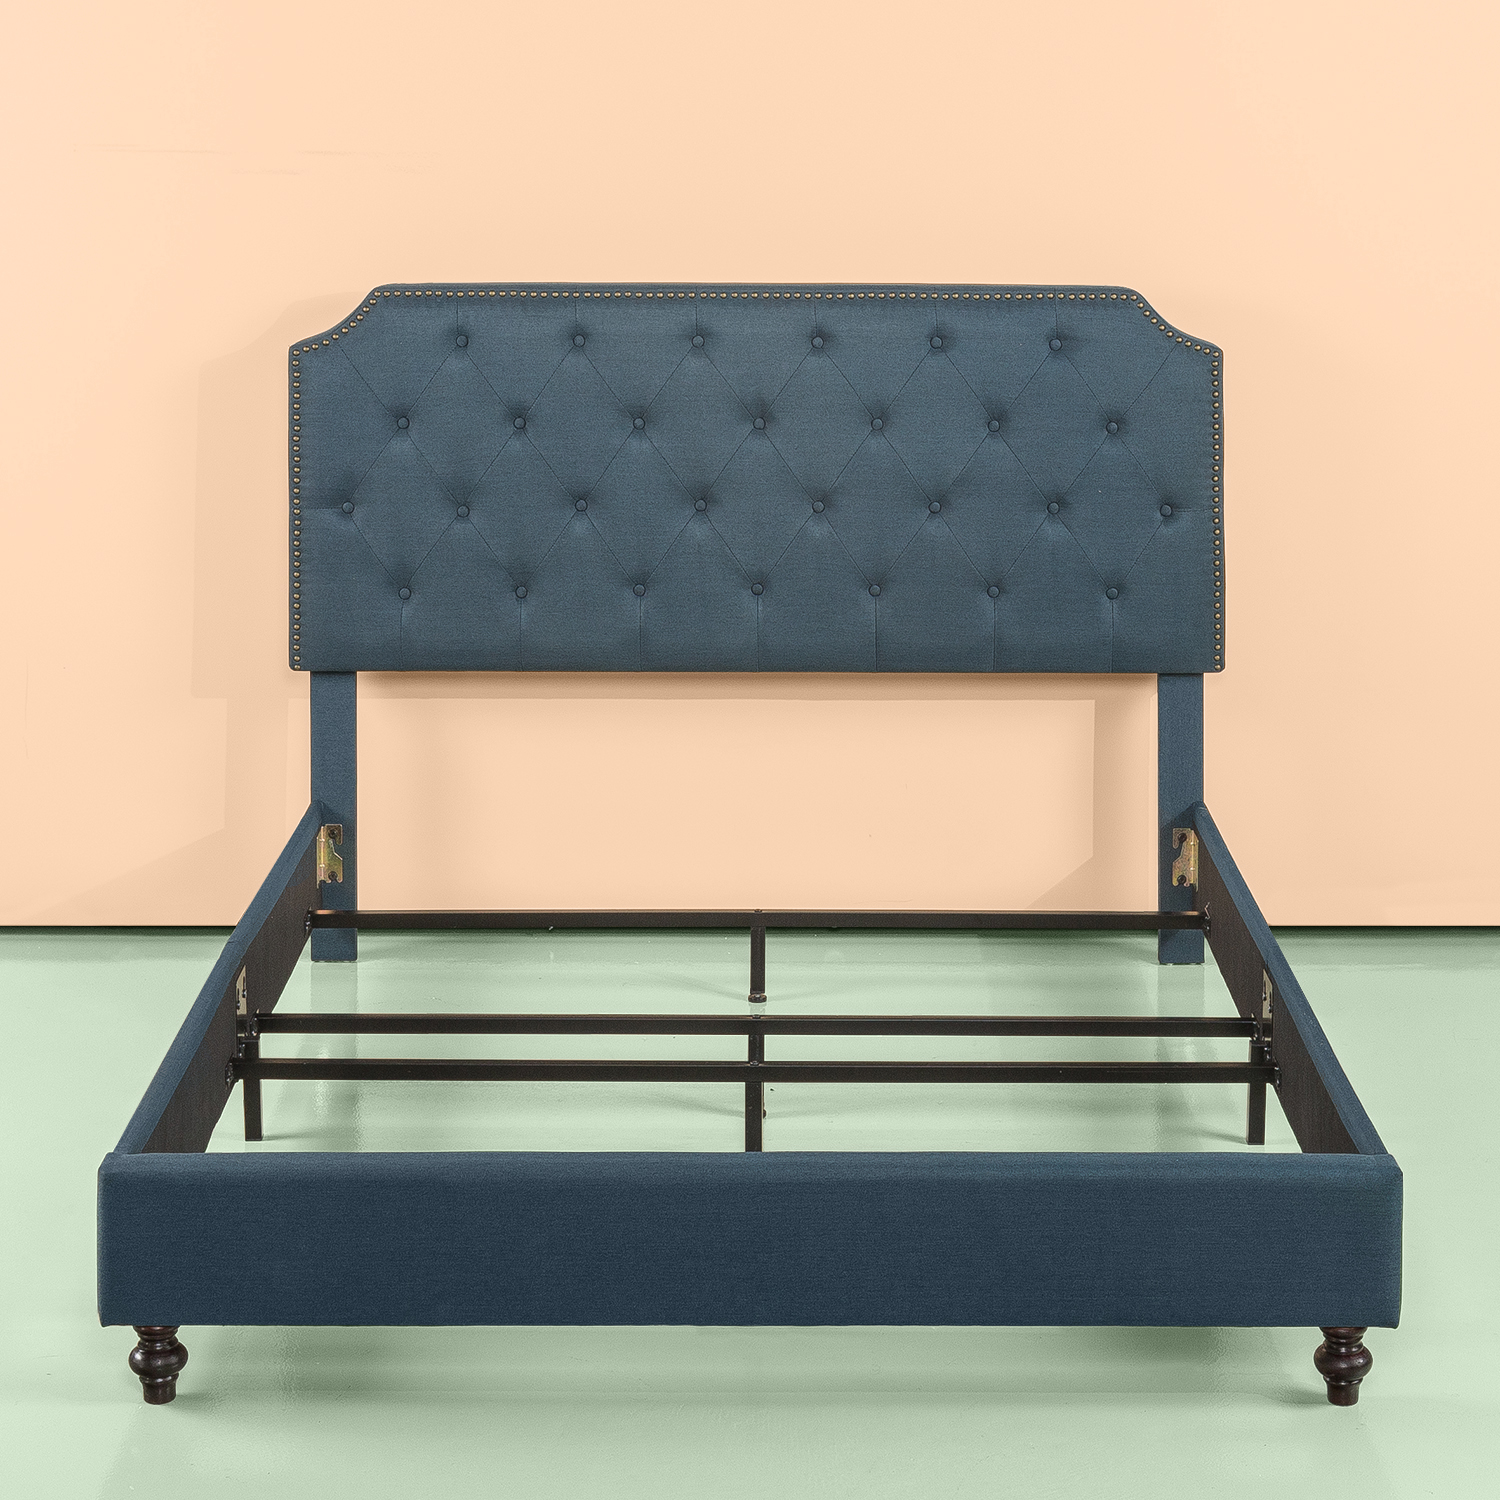 Zinus Andover Upholstered Tufted Bed Frame Nailhead Detail, Multiple Sizes